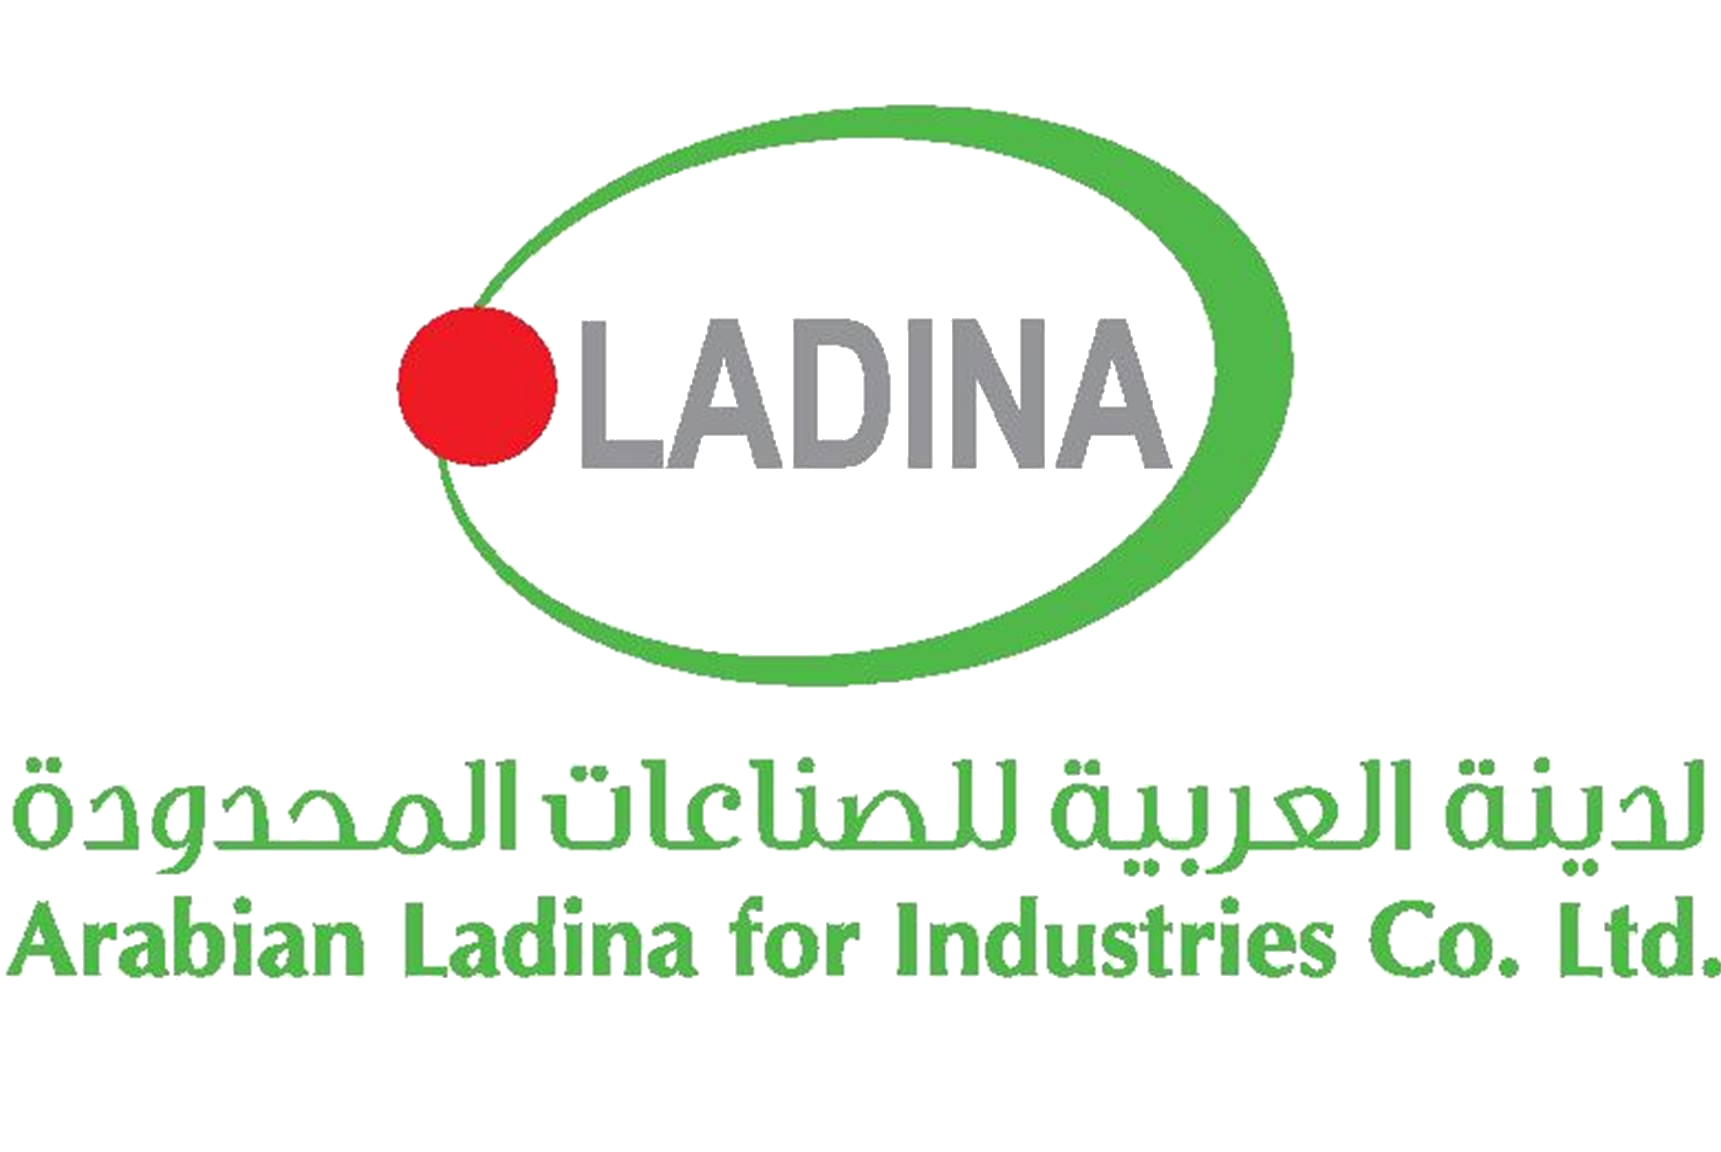 Arabian Ladina for Industries